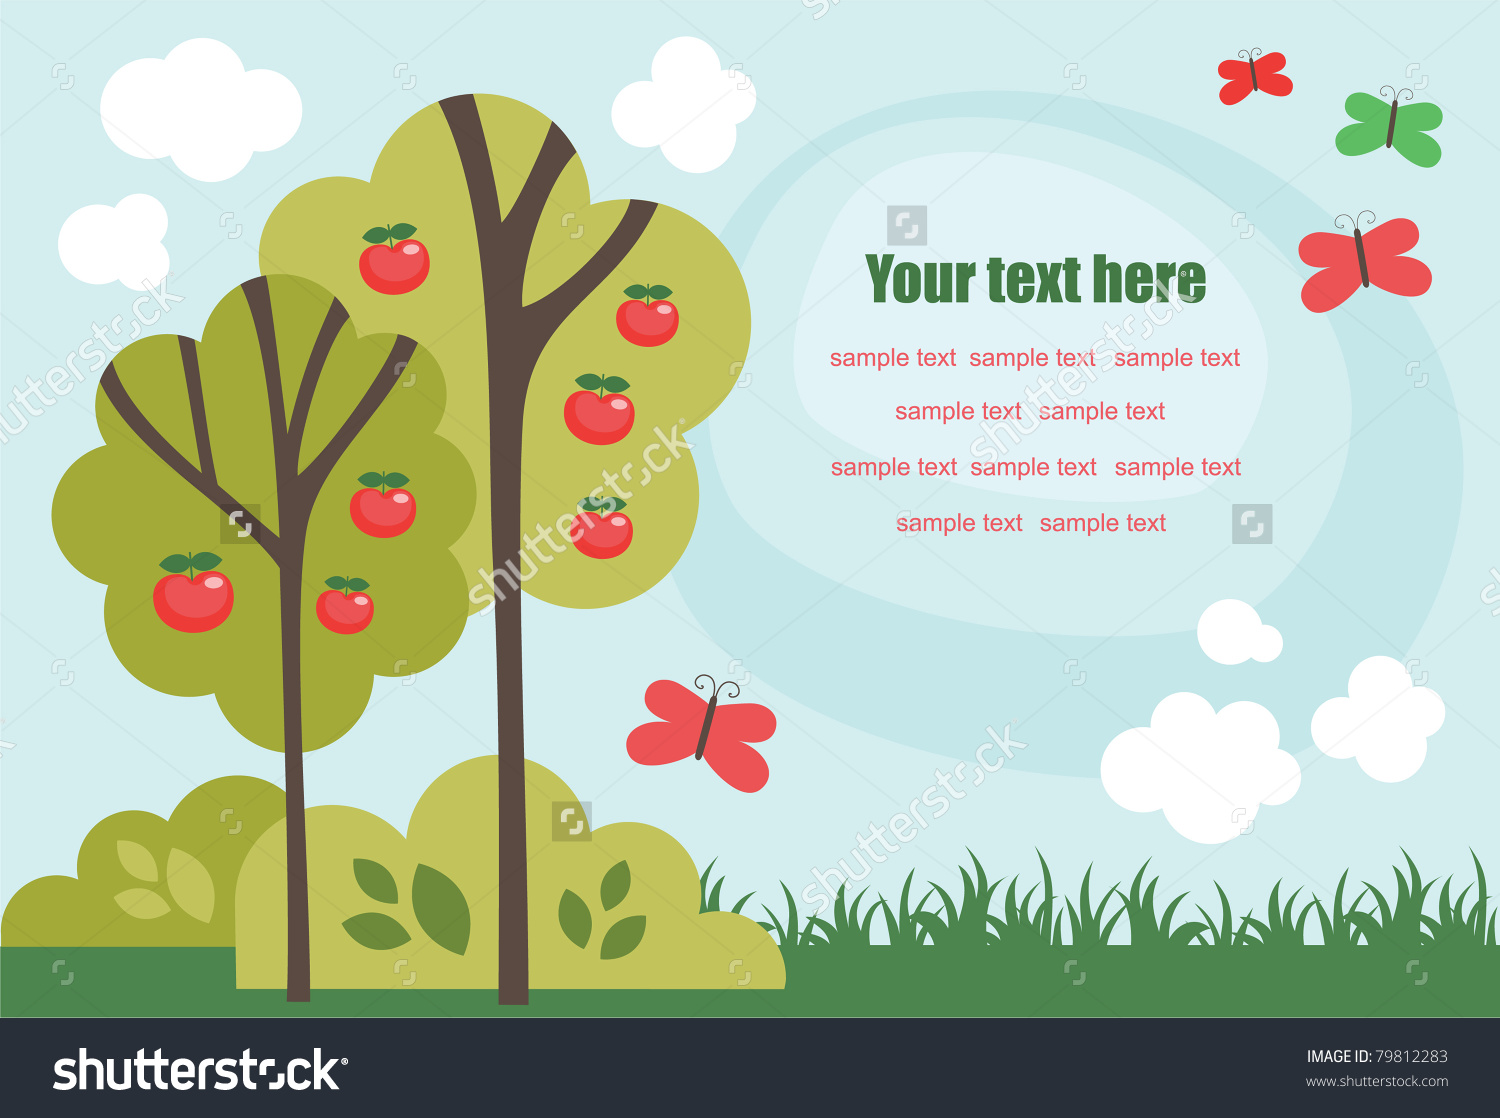 Cute Fairytale Landscape. Vector Illustration.